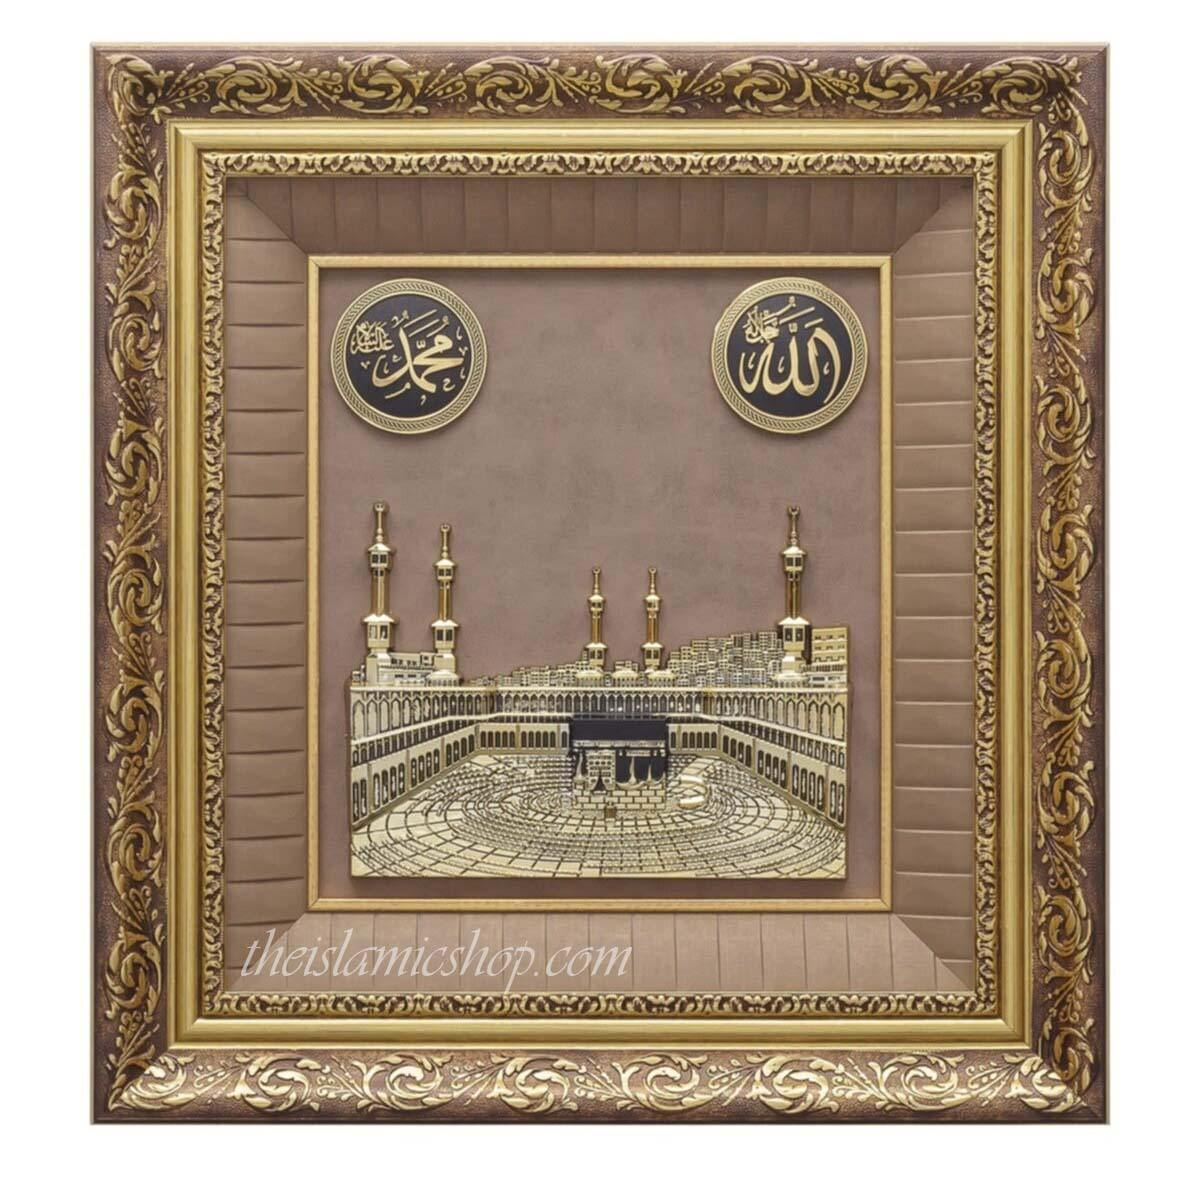 Luxeturc-gunes-kb-0804-islamic-frame-home-decor-52x58-cm-kaba-Allah-muhammed-gold-the-islamic-shop